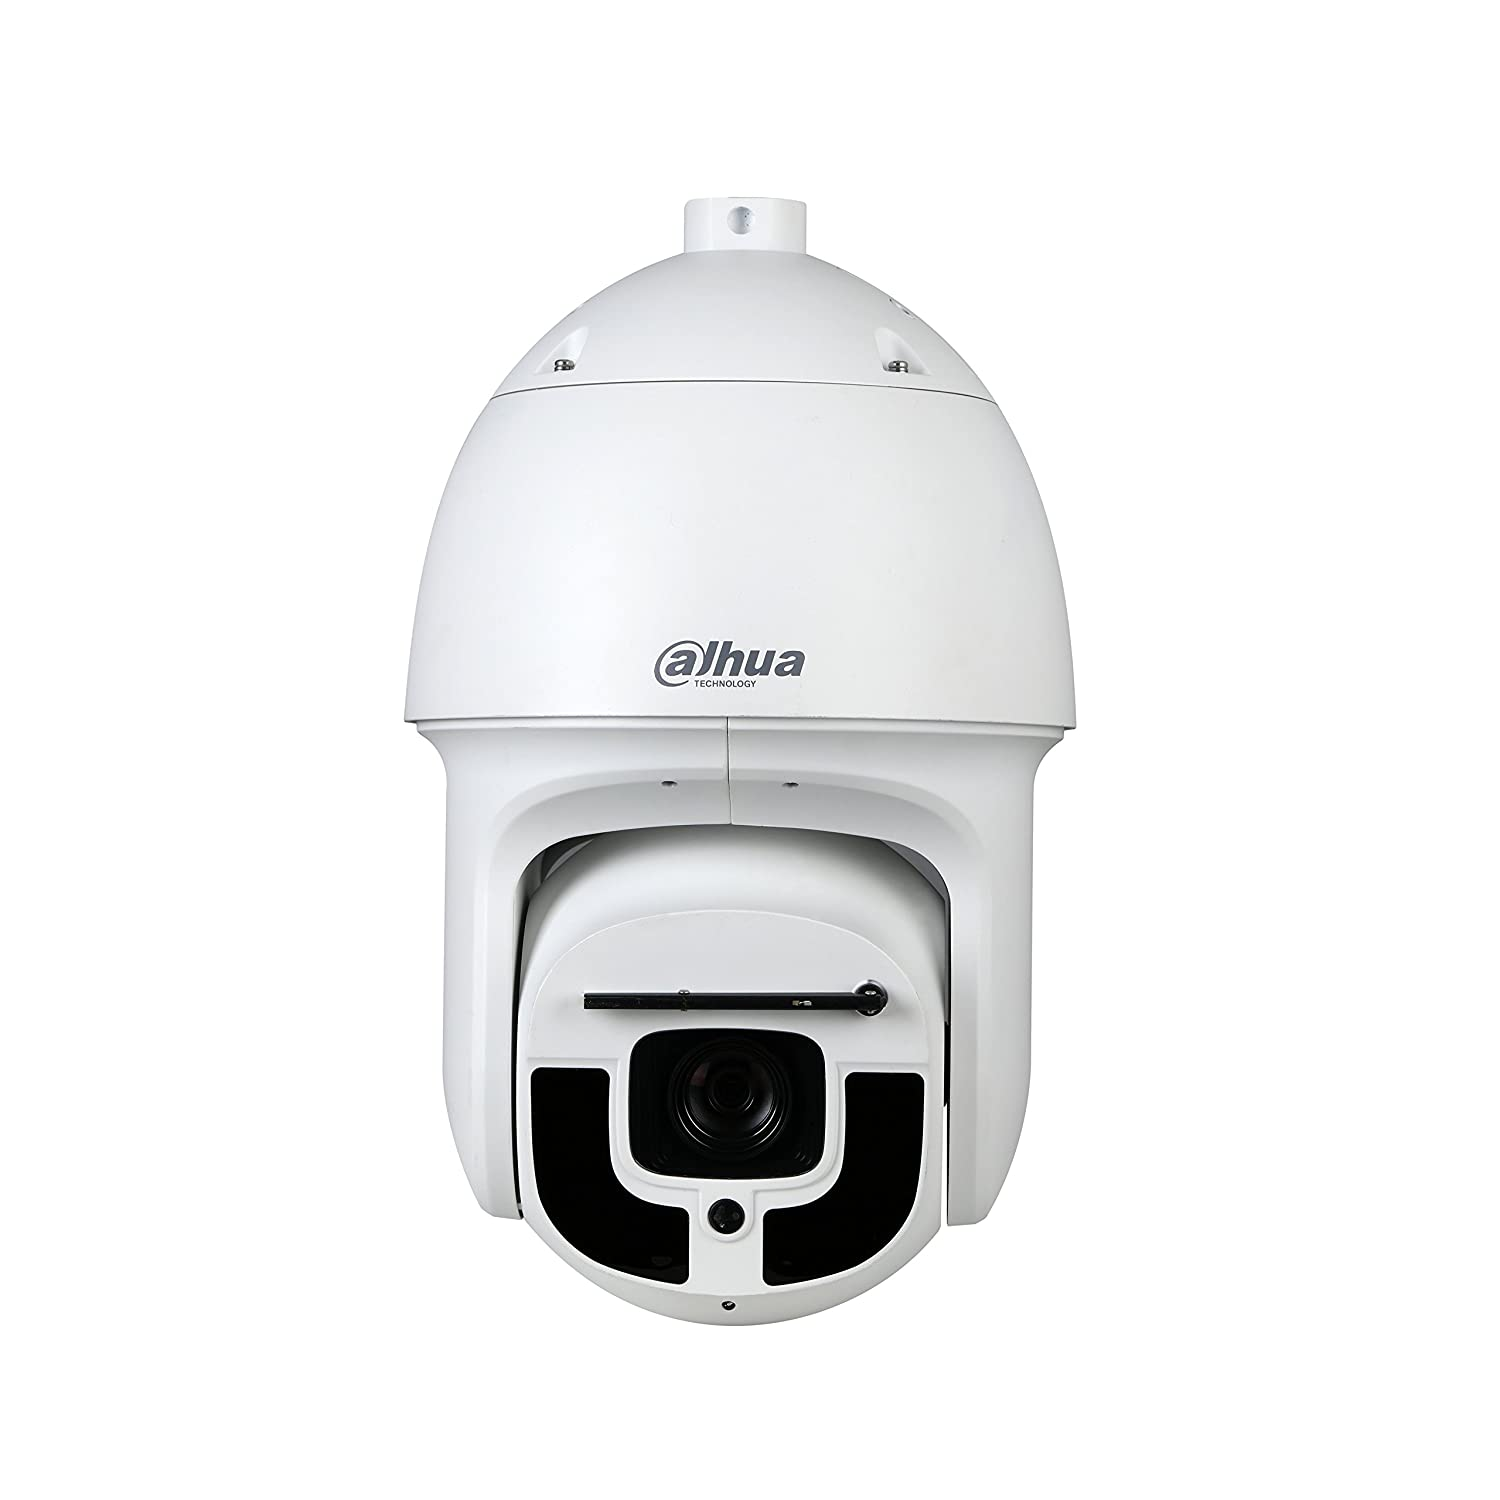 Amazon.com: Dahua sd10 a248 V-hni 2 MP 48 x Starlight IR ...